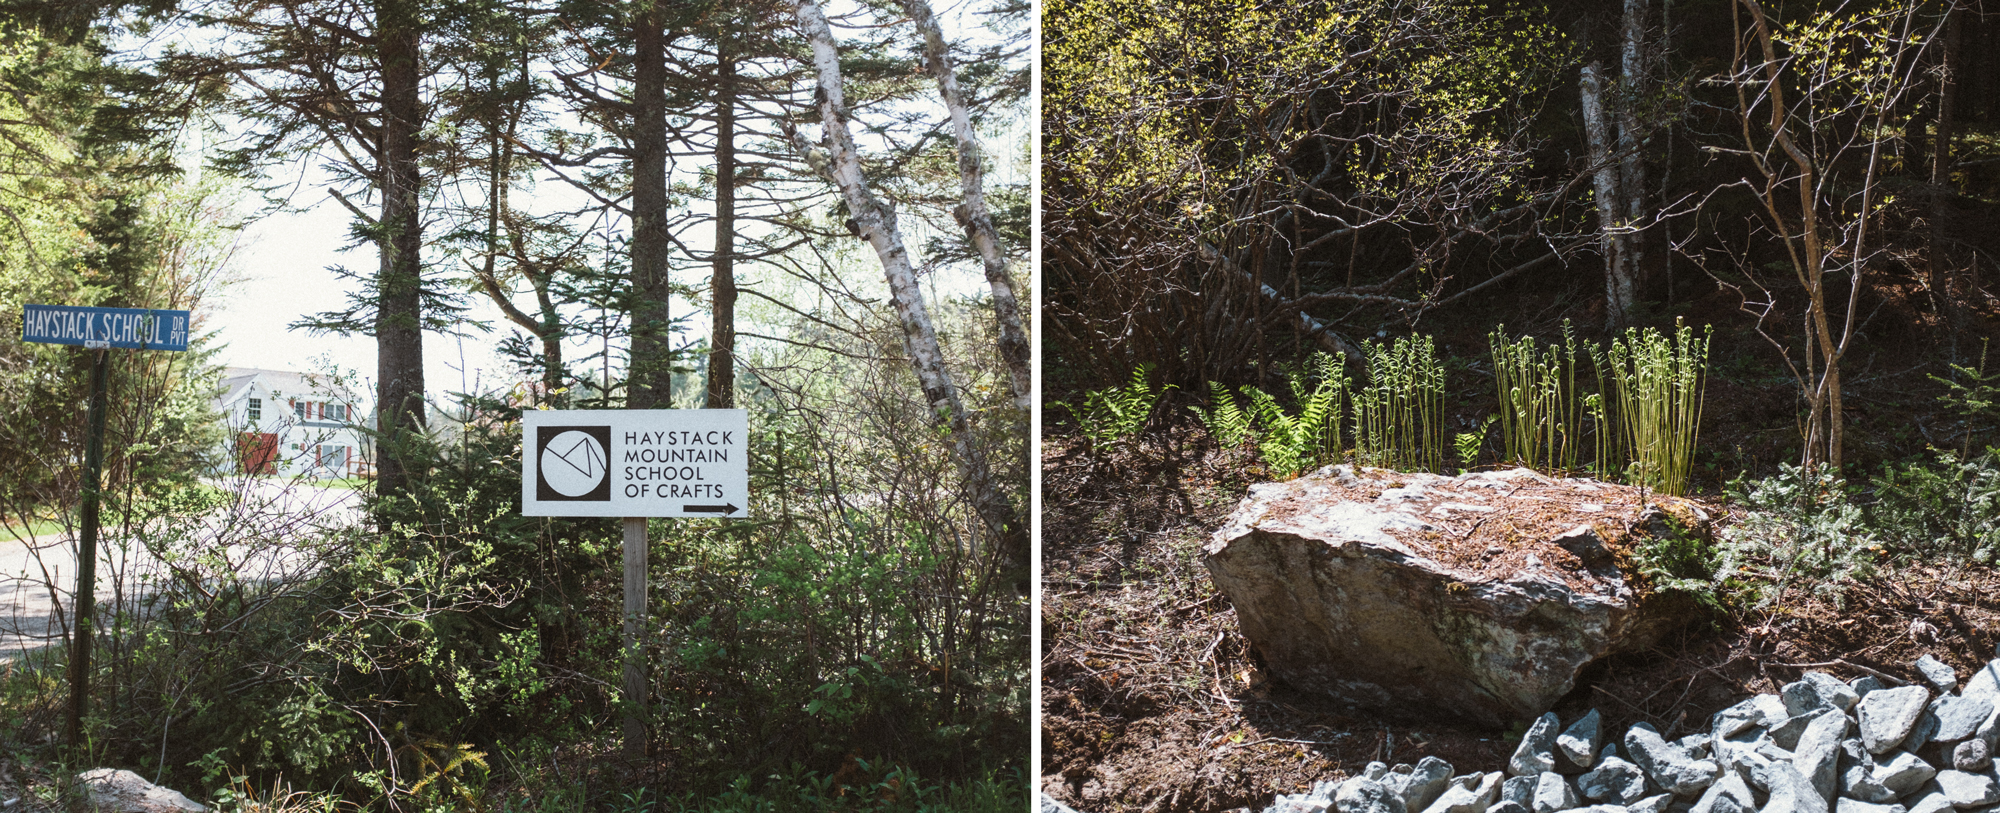 We went to check out Haystack Mountain School of Crafts in Deer Isle, ME.